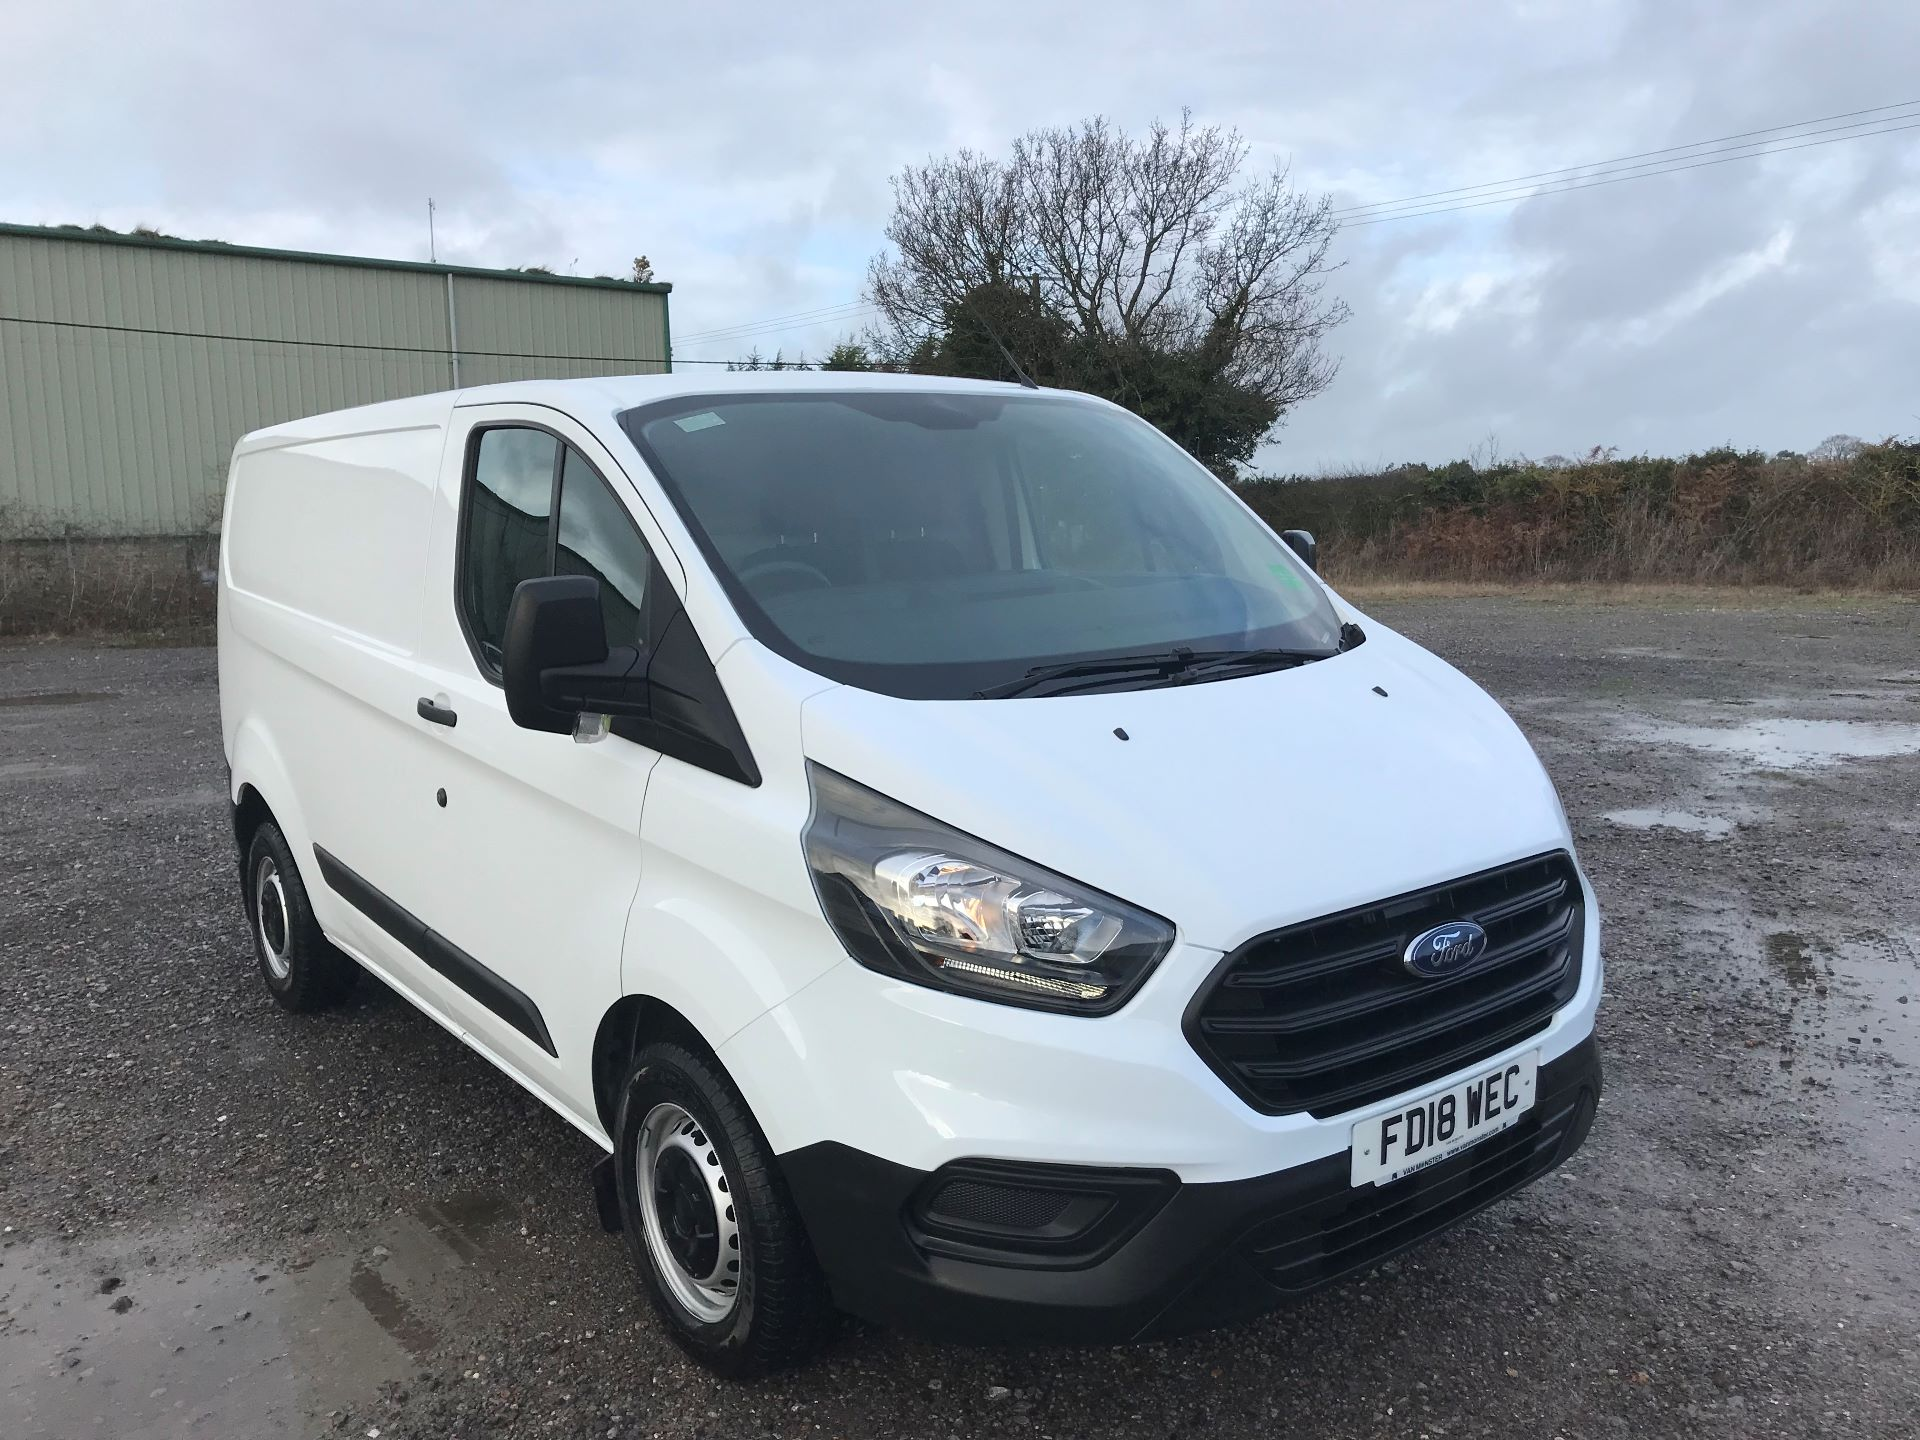 2018 Ford Transit Custom 300 L1 DIESEL FWD 2.0 TDCi 105ps Low Roof Van EURO 6 (FD18WEC)